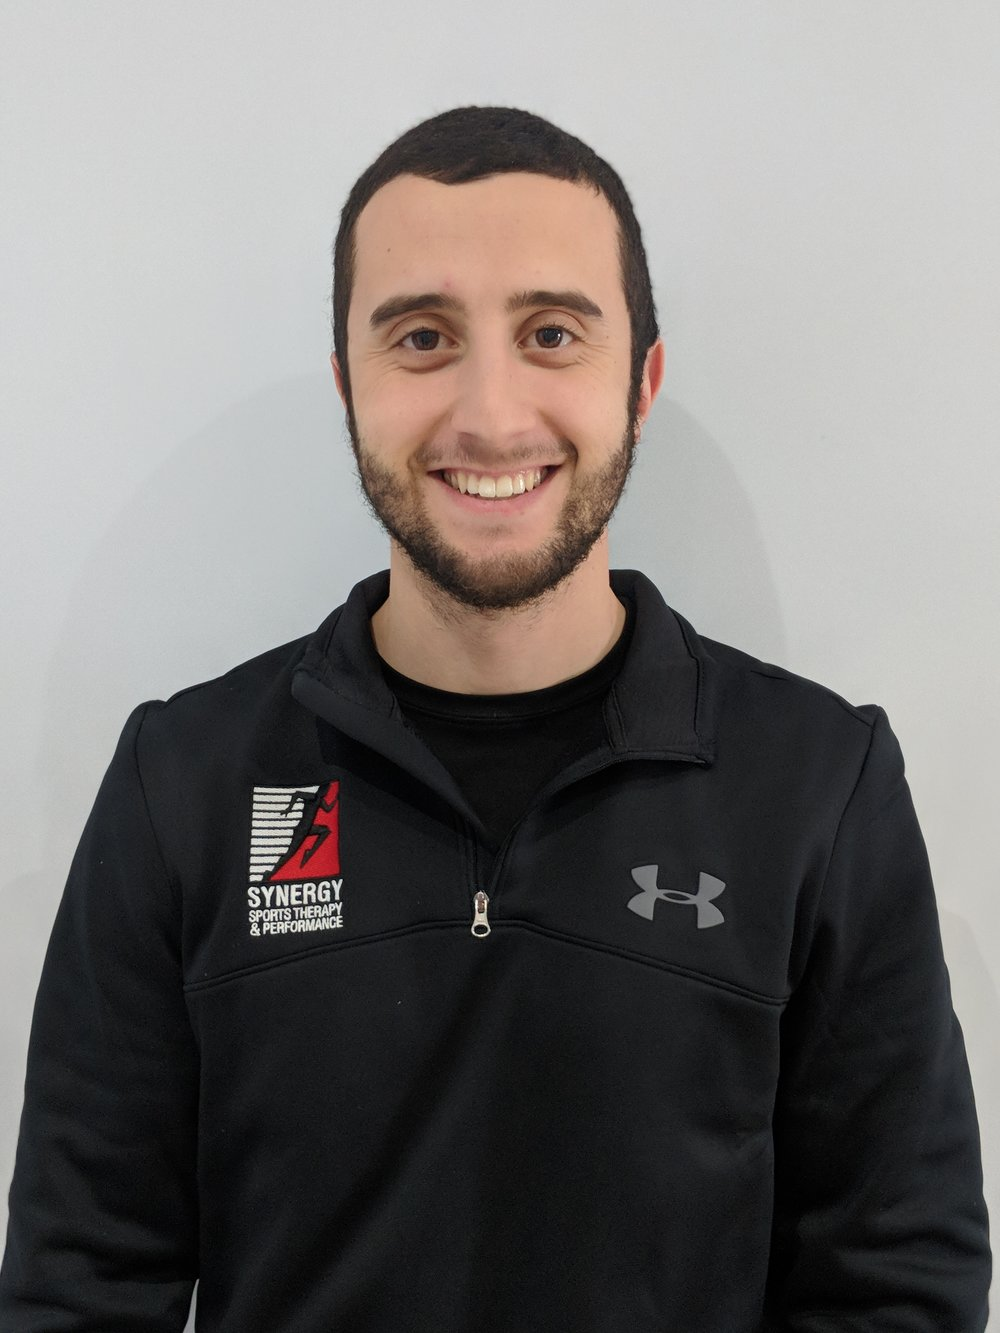 Philippe Hage-Moussa BSc, CAT(C)  Athletic Therapist NeuroKinetic Therapist  Phil graduated from Concordia University's athletic therapy program in 2016. He has always had a passion for sports and enjoys helping athletes of all level perform at their best.  Phil has had the chance of working with an abundance of athletes including the highly competitive Concordia Stingers female rugby team which ranked fourth at the 2015 CIS national championship. He also had the pleasure of working with the division one men's basketball team at Vanier college which ranked fourth at the 2014 CCAA national championship. He has worked with many other sports such as football, hockey, soccer, gymnastics, wrestling, and tennis.  In addition to his work as a therapist, Phil's passion for sports comes from his experience as a competitive soccer player. He has played at the AAA level for many years and still competes yearlong. He has also been coaching soccer at the high school level since 2012.  In the clinic, Phil takes a very functional approach when assessing and treating patients. Using his skills and knowledge in musculoskeletal rehabilitation, manual therapy, and strength and conditioning his ultimate goal is to help his patients return to their active lifestyle regardless of their fitness level.